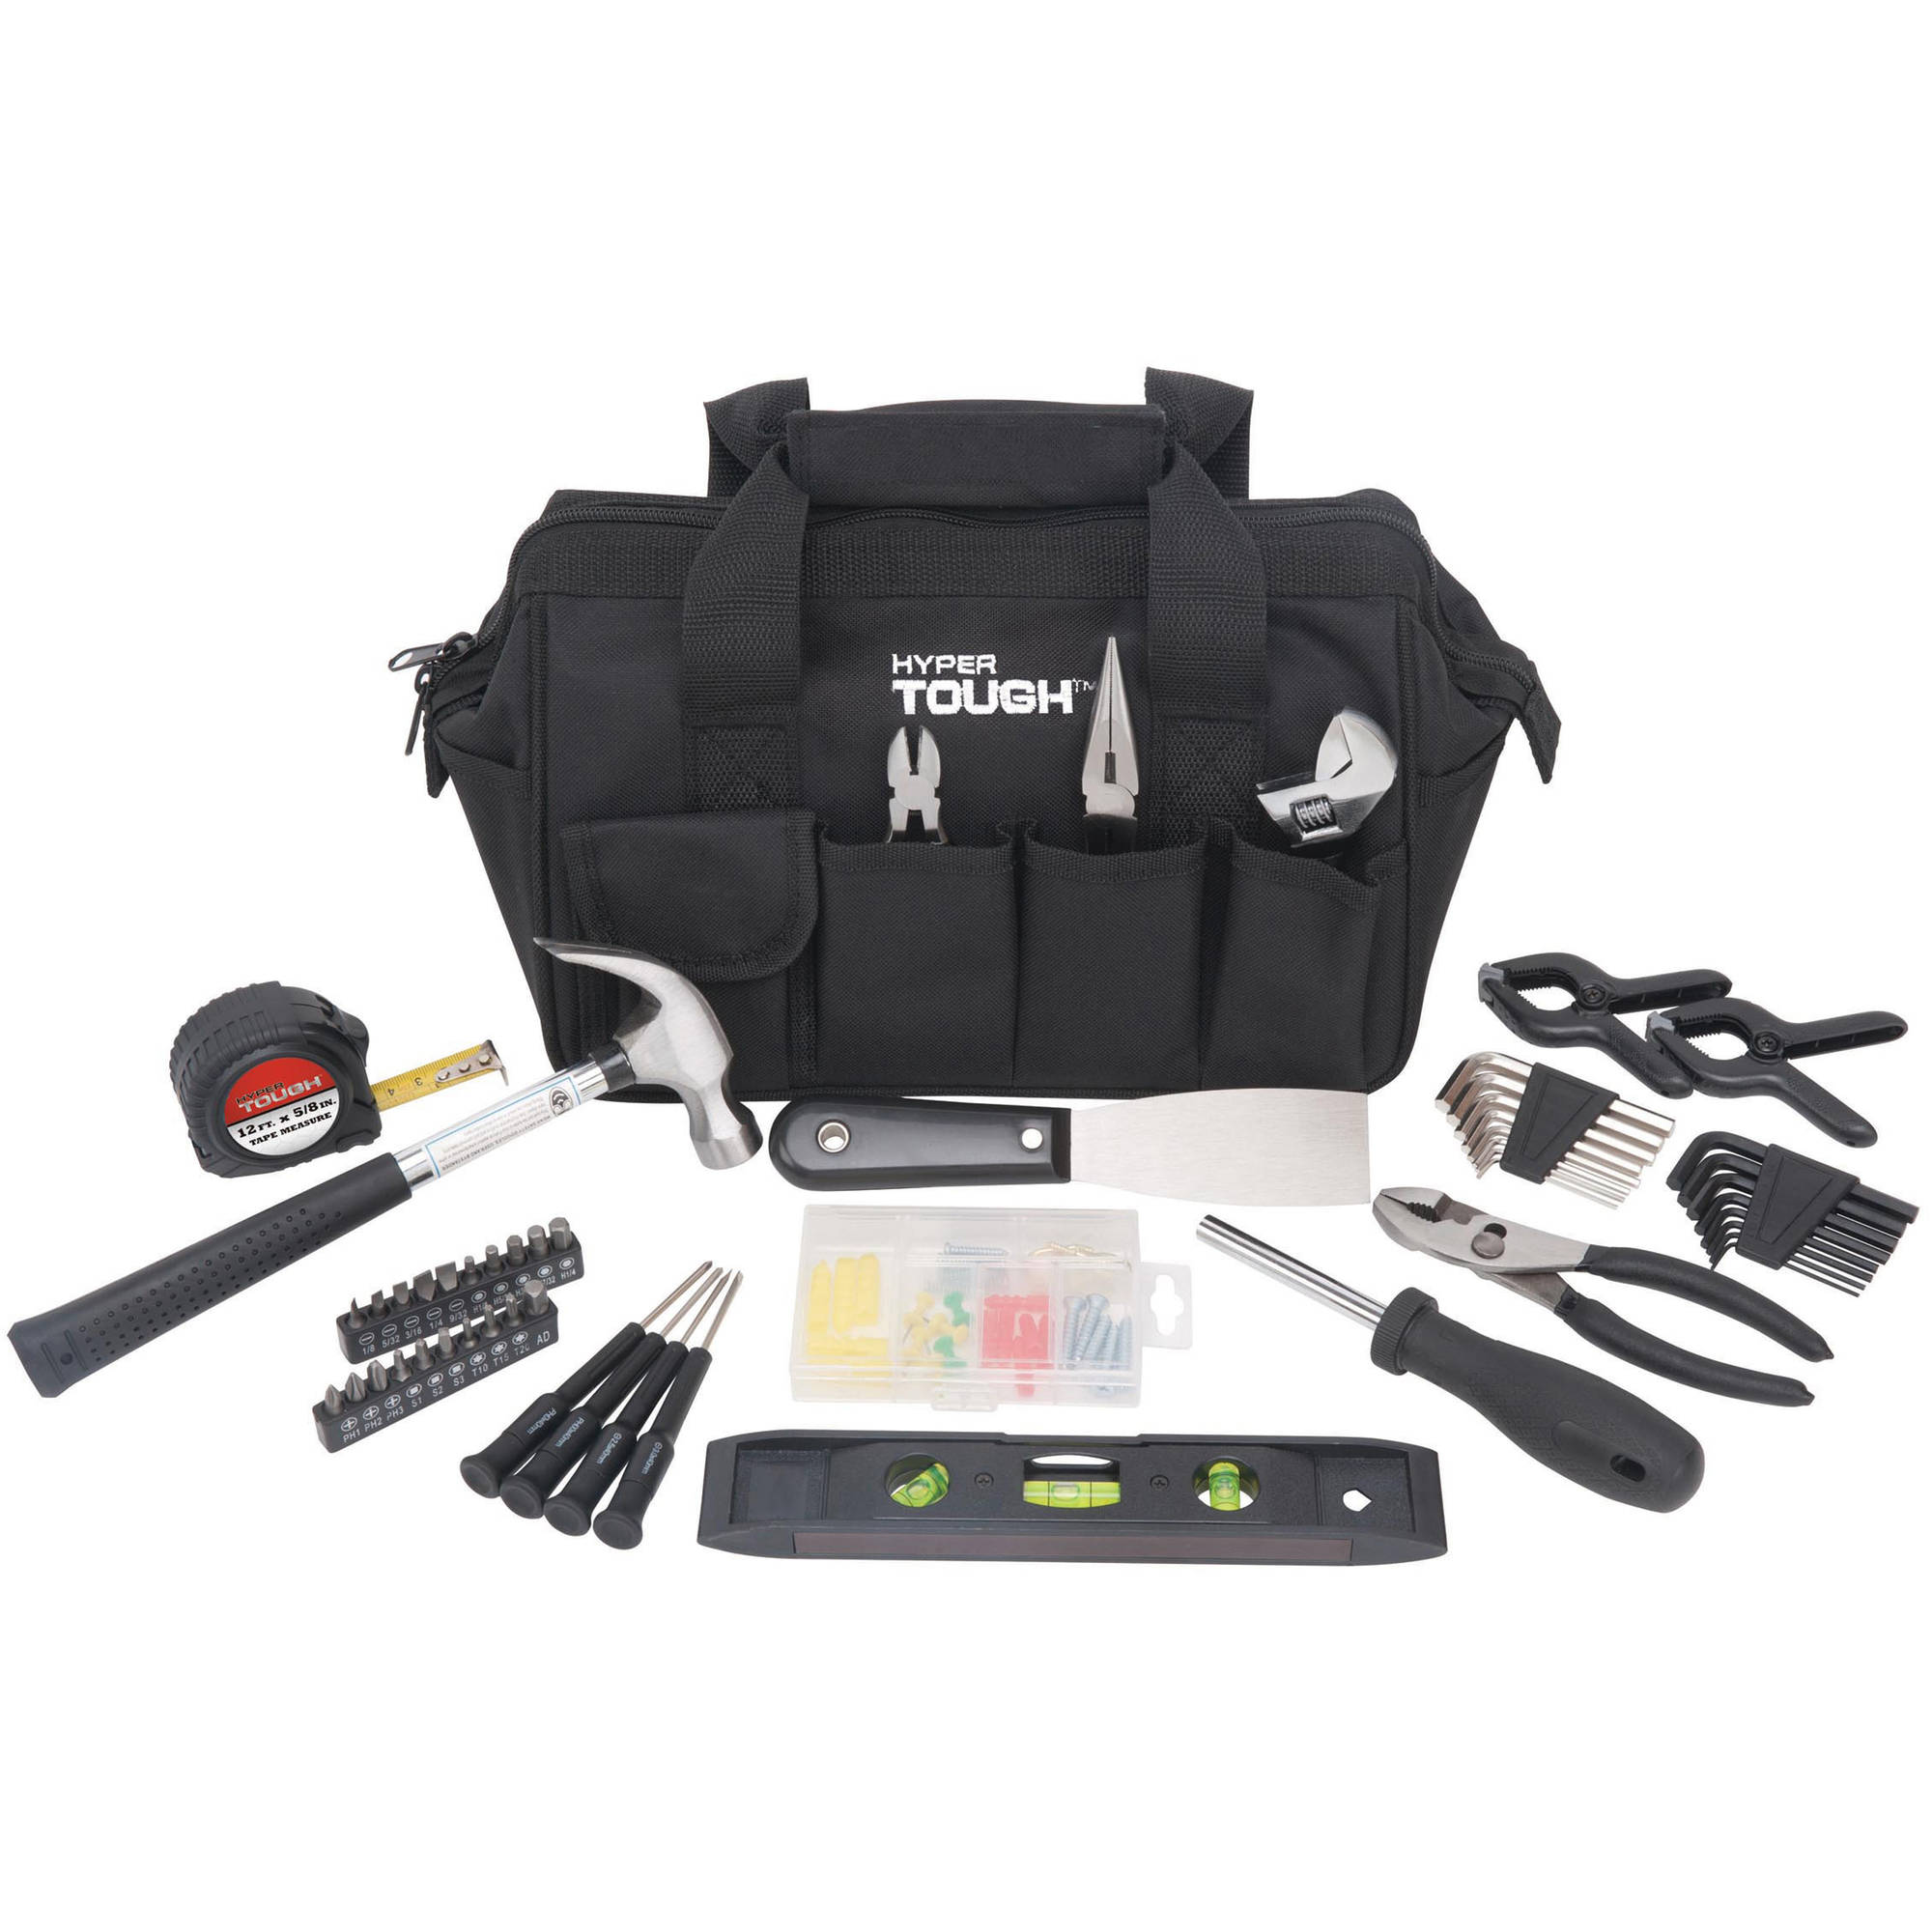 Hyper Tough 53-Piece Hand Tool Set, Black